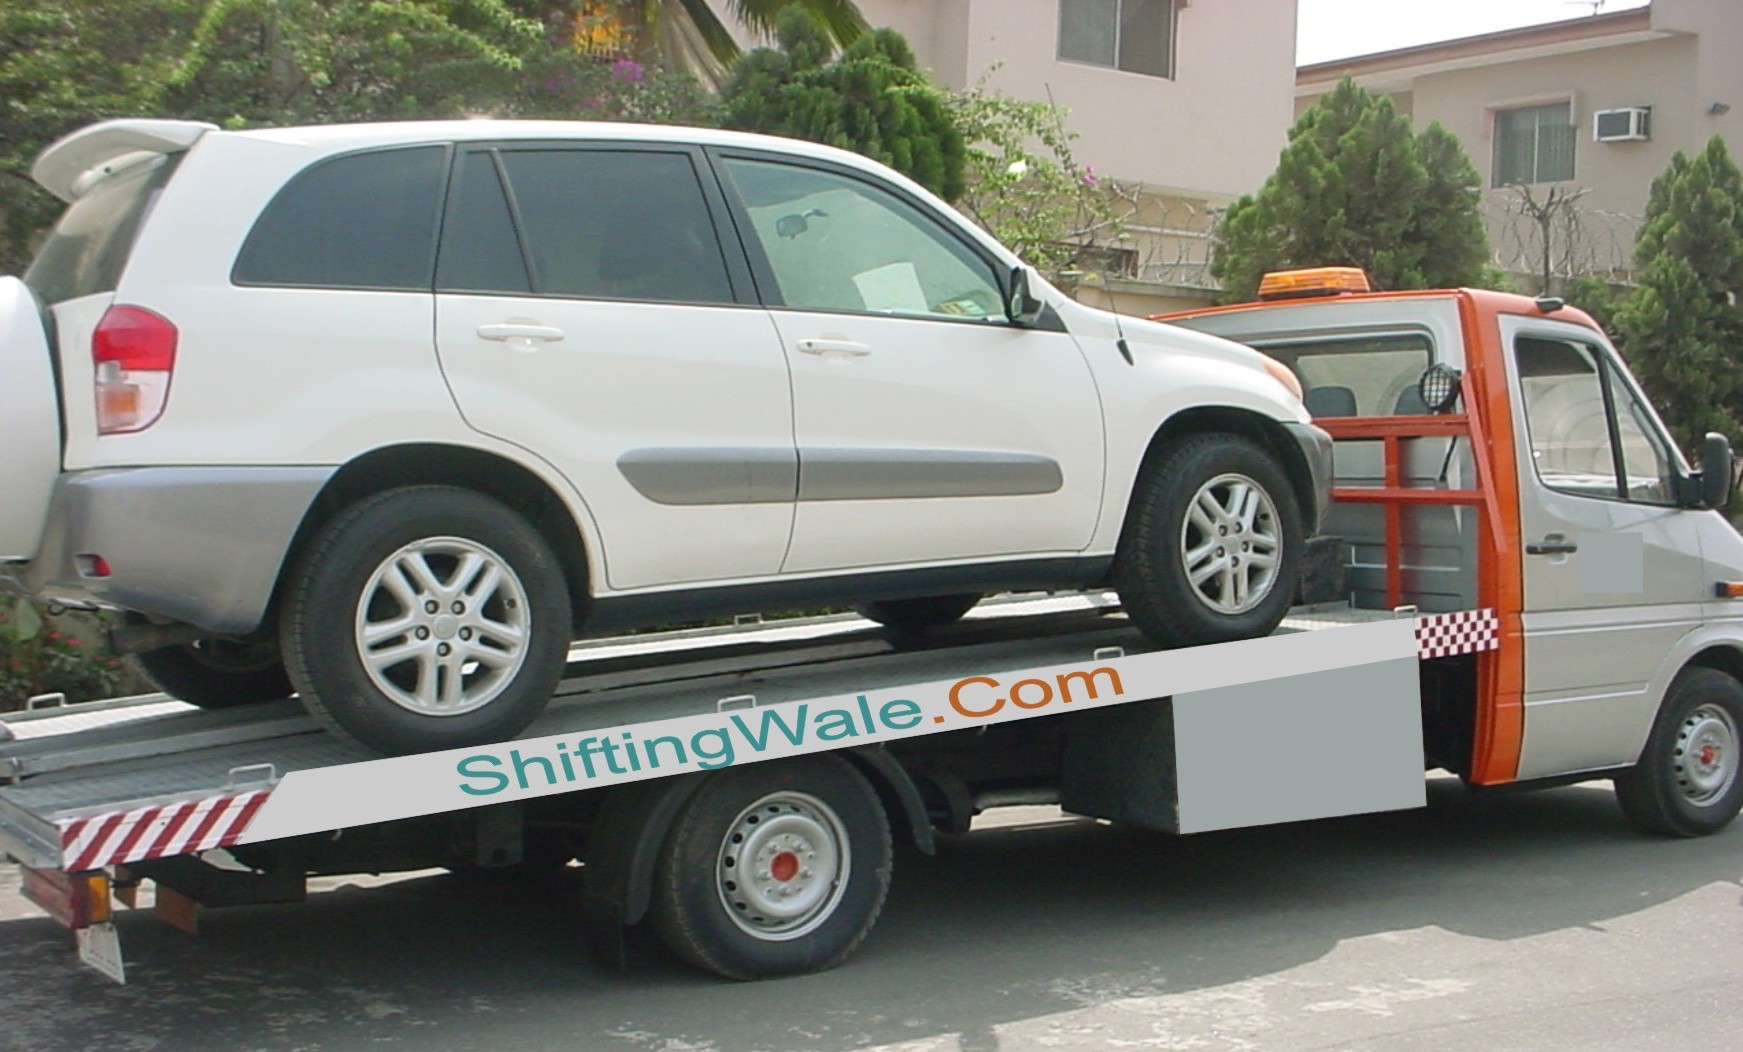 Need Flatbed Car Transportation Service in Delhi Gurgaon Faridabad Ghaziabad Noida to Hyderabad Bangalore Chennai Kochi to Delhi Gurgaon Faridabad Ghaziabad Noida